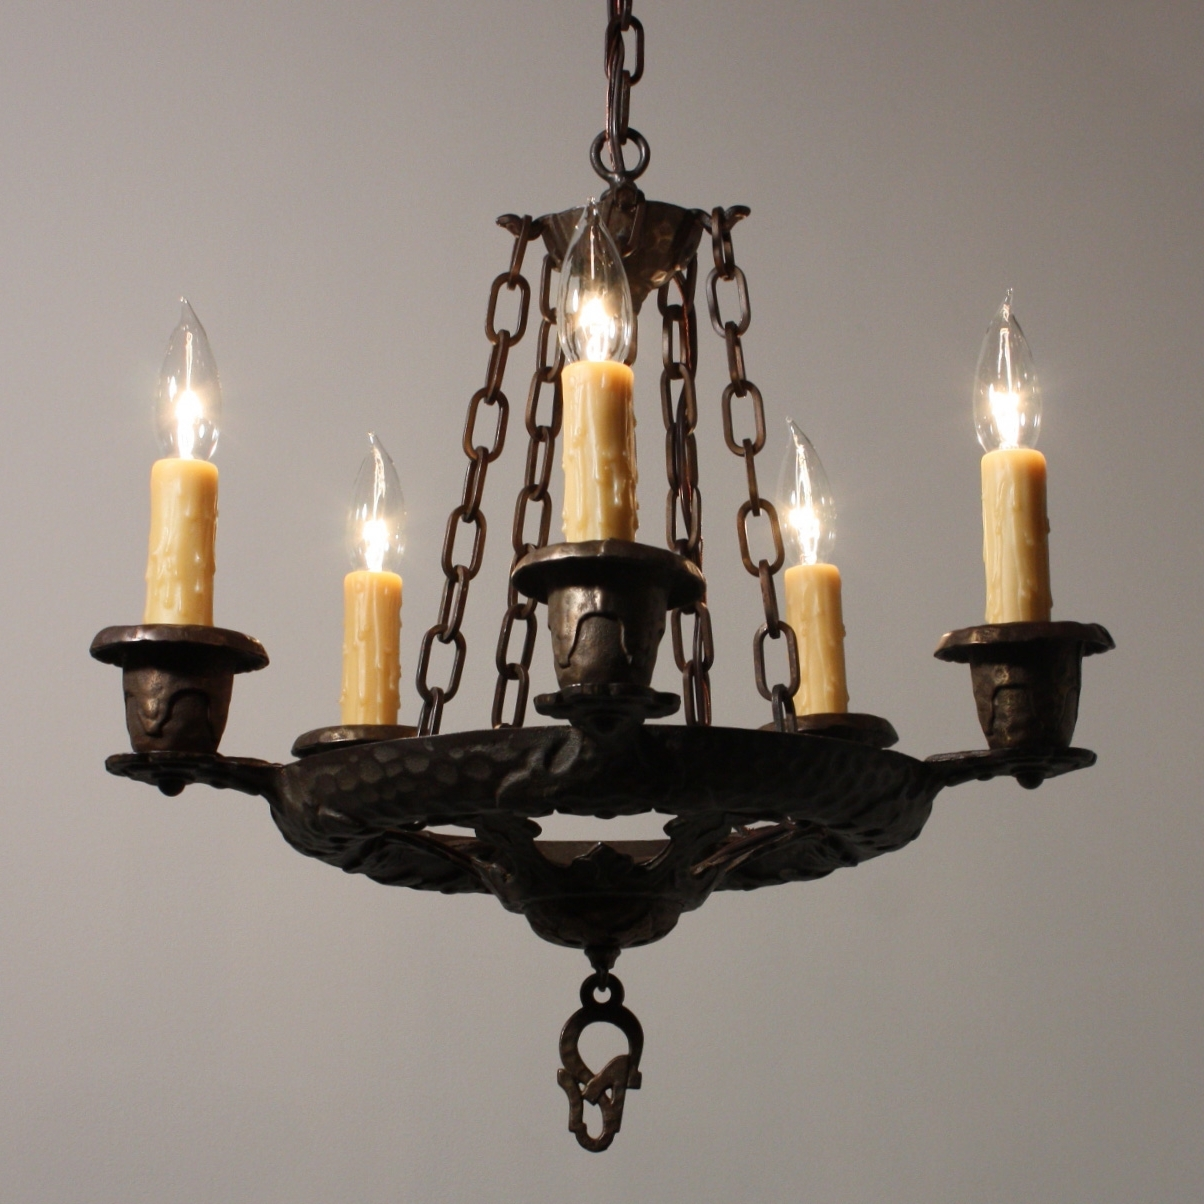 Recent Cast Iron Antique Chandelier With Handsome Antique Five Light Tudor Chandelier, Cast Iron, Nc1650 Rw (View 18 of 20)